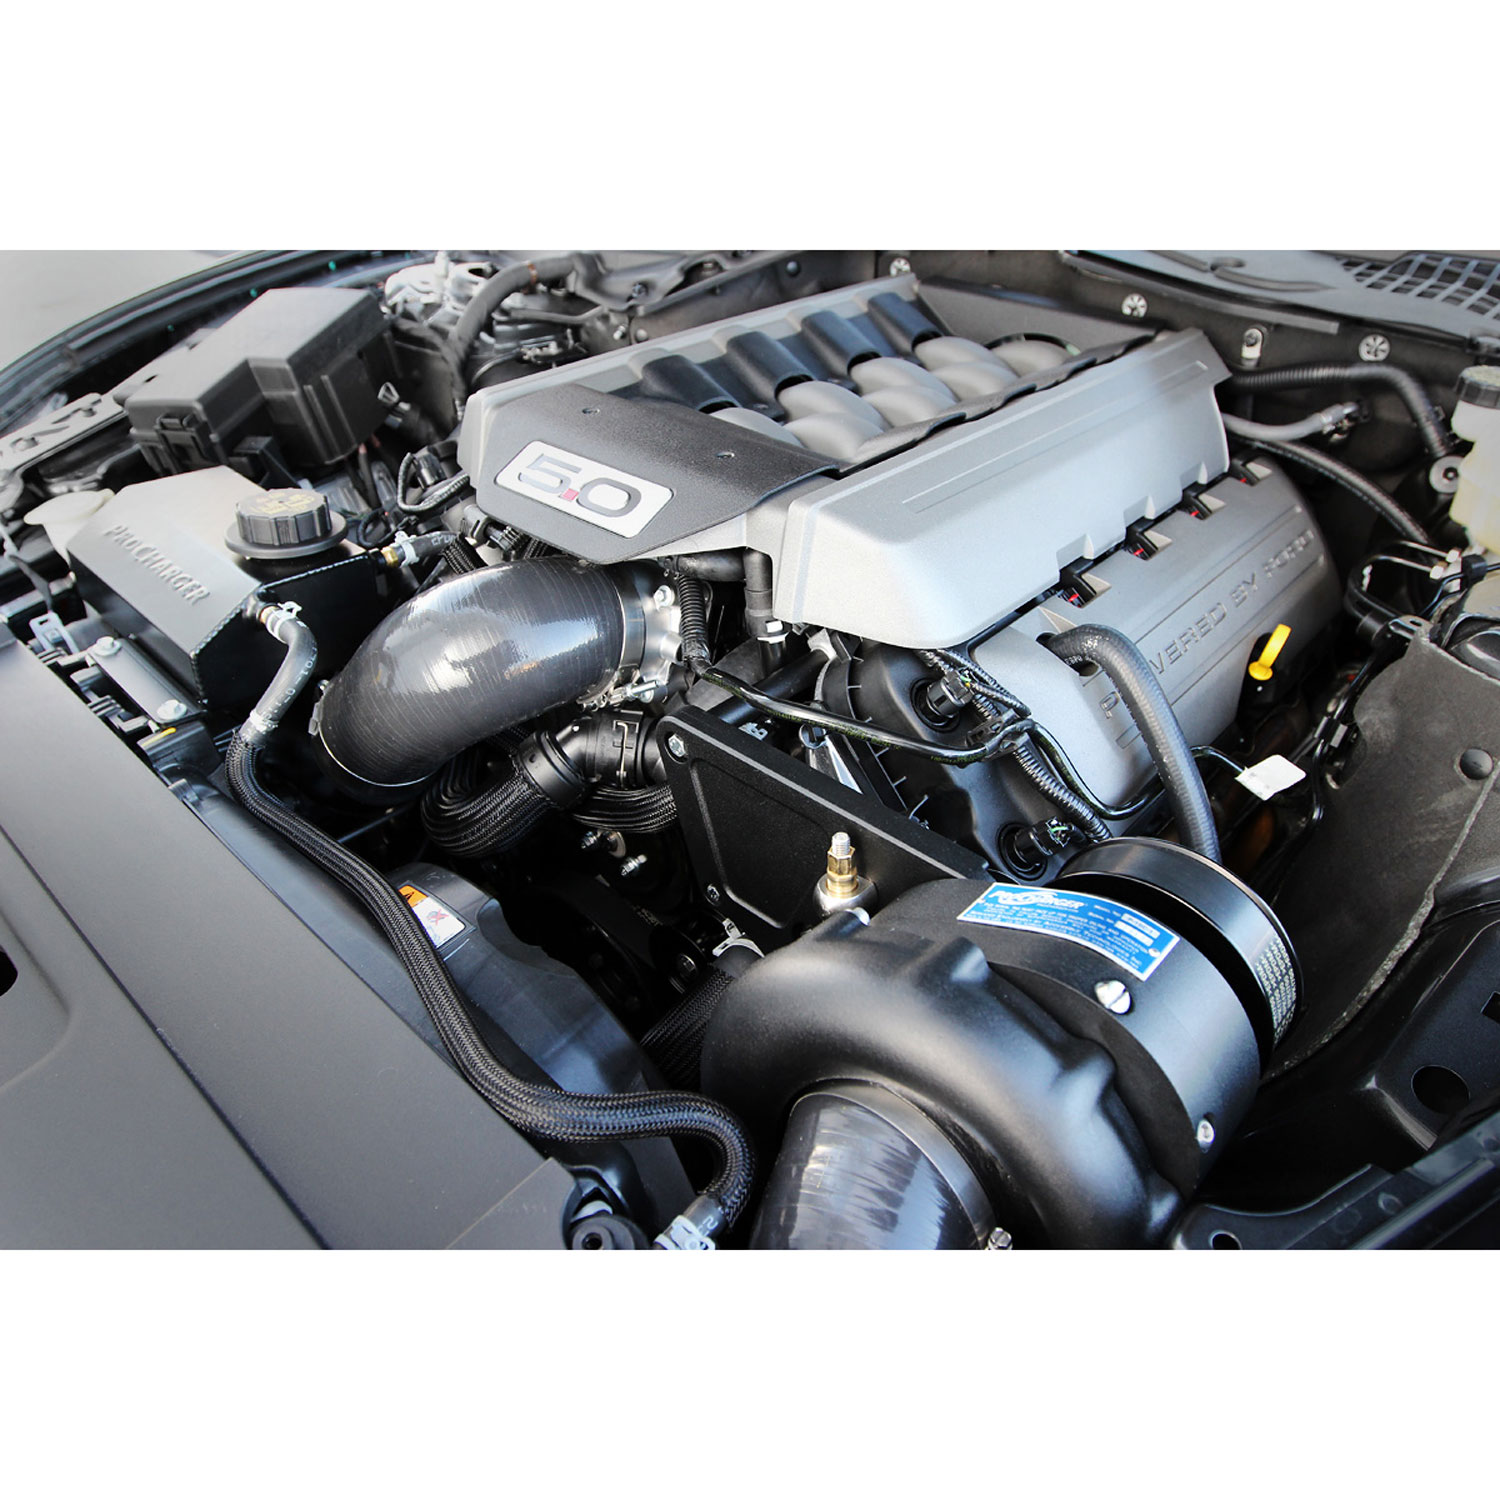 Mustang S550 Procharger Installation: Paxton 1FW212P1XBBH ProCharger Stage II Intercooled